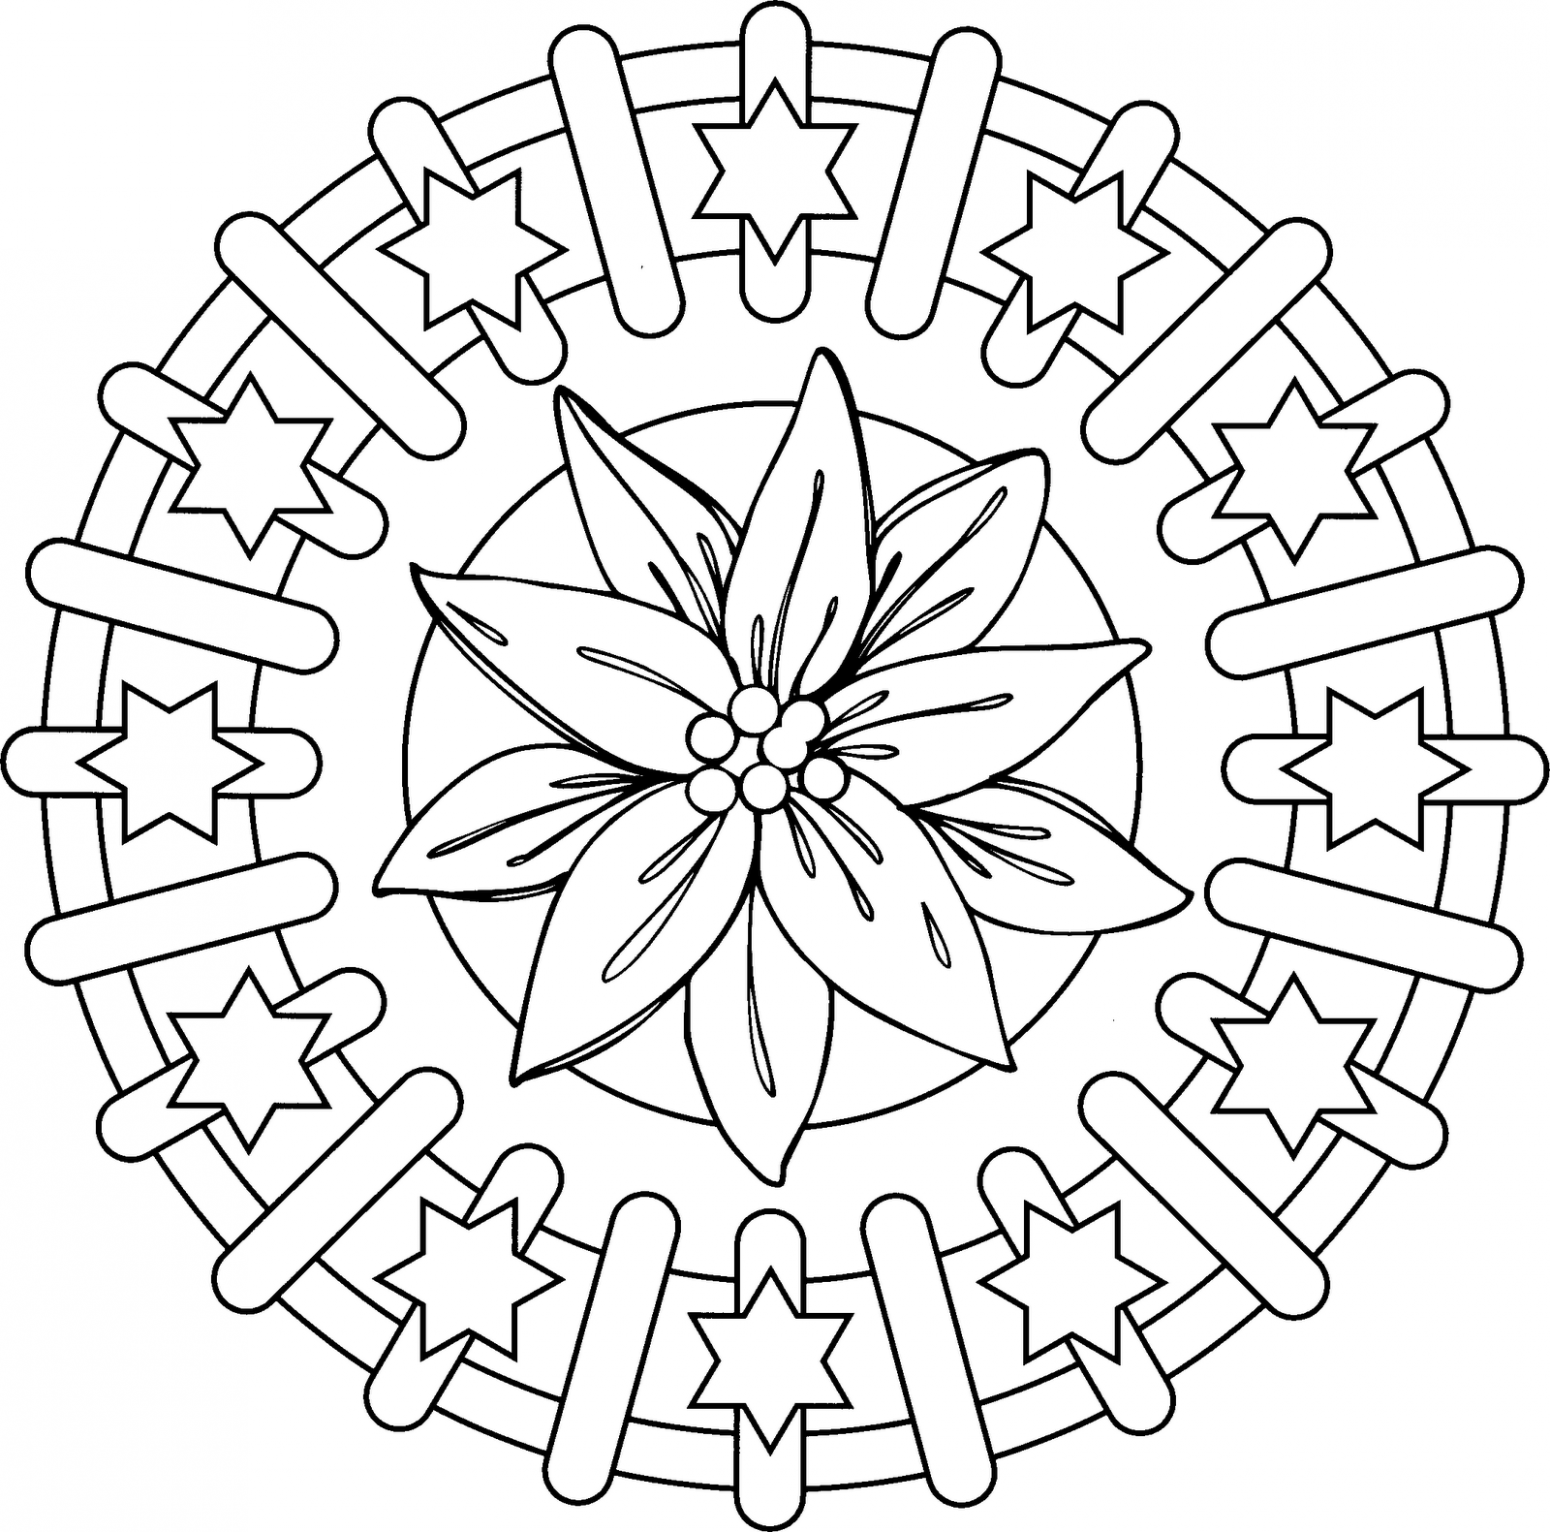 Printable mandalas for adults for Mandala coloring pages printable free